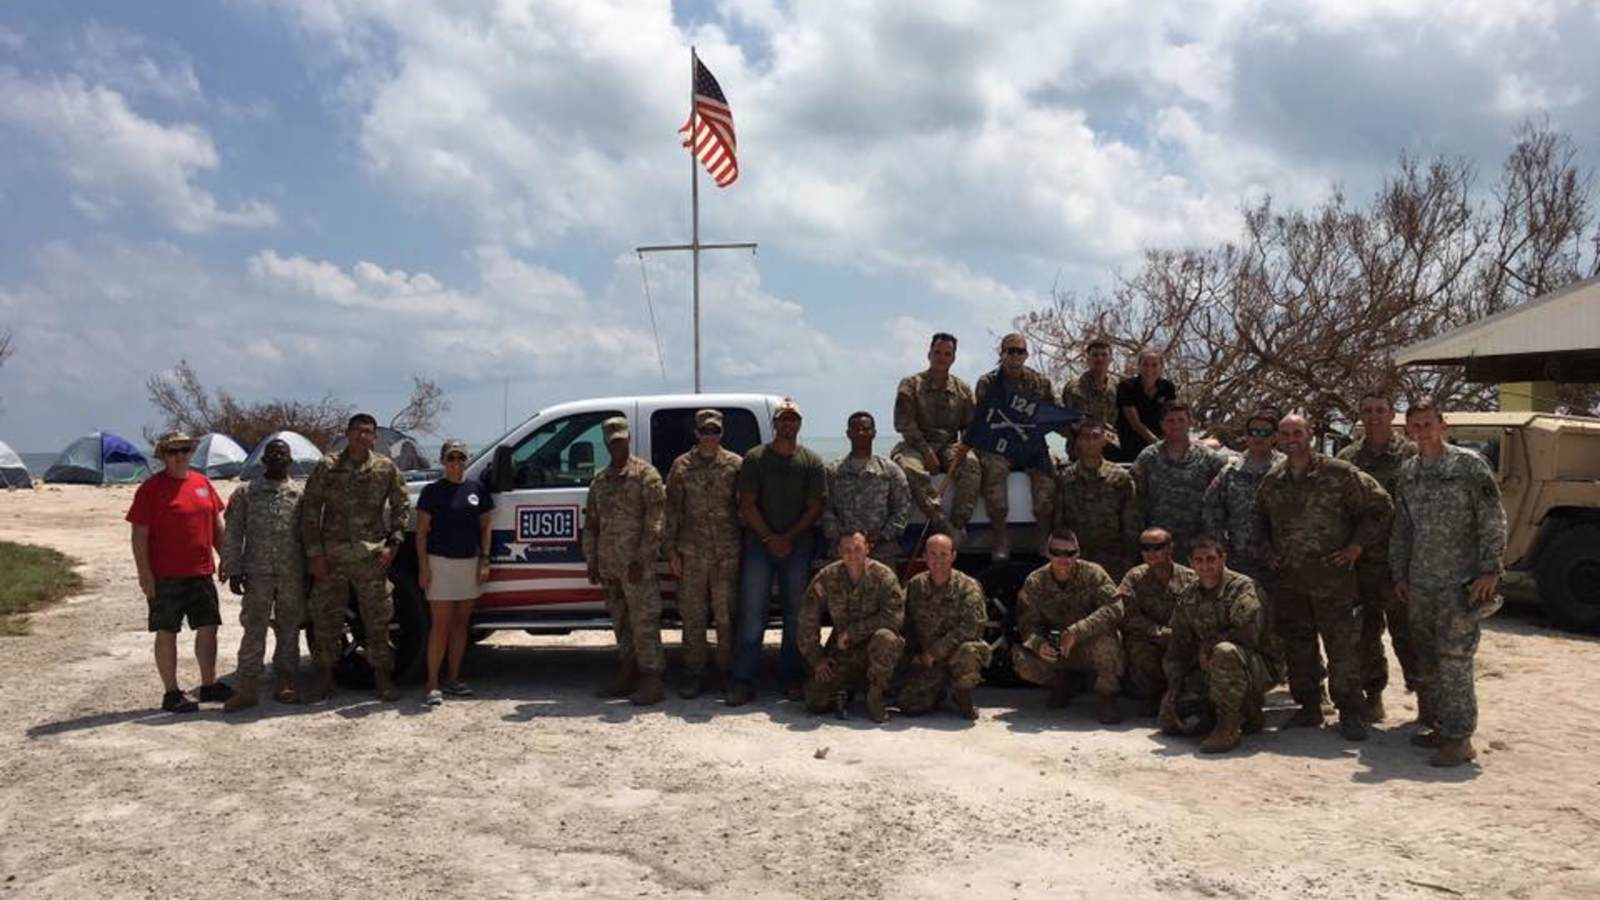 Hurricane Florence updates from the USO of North Carolina